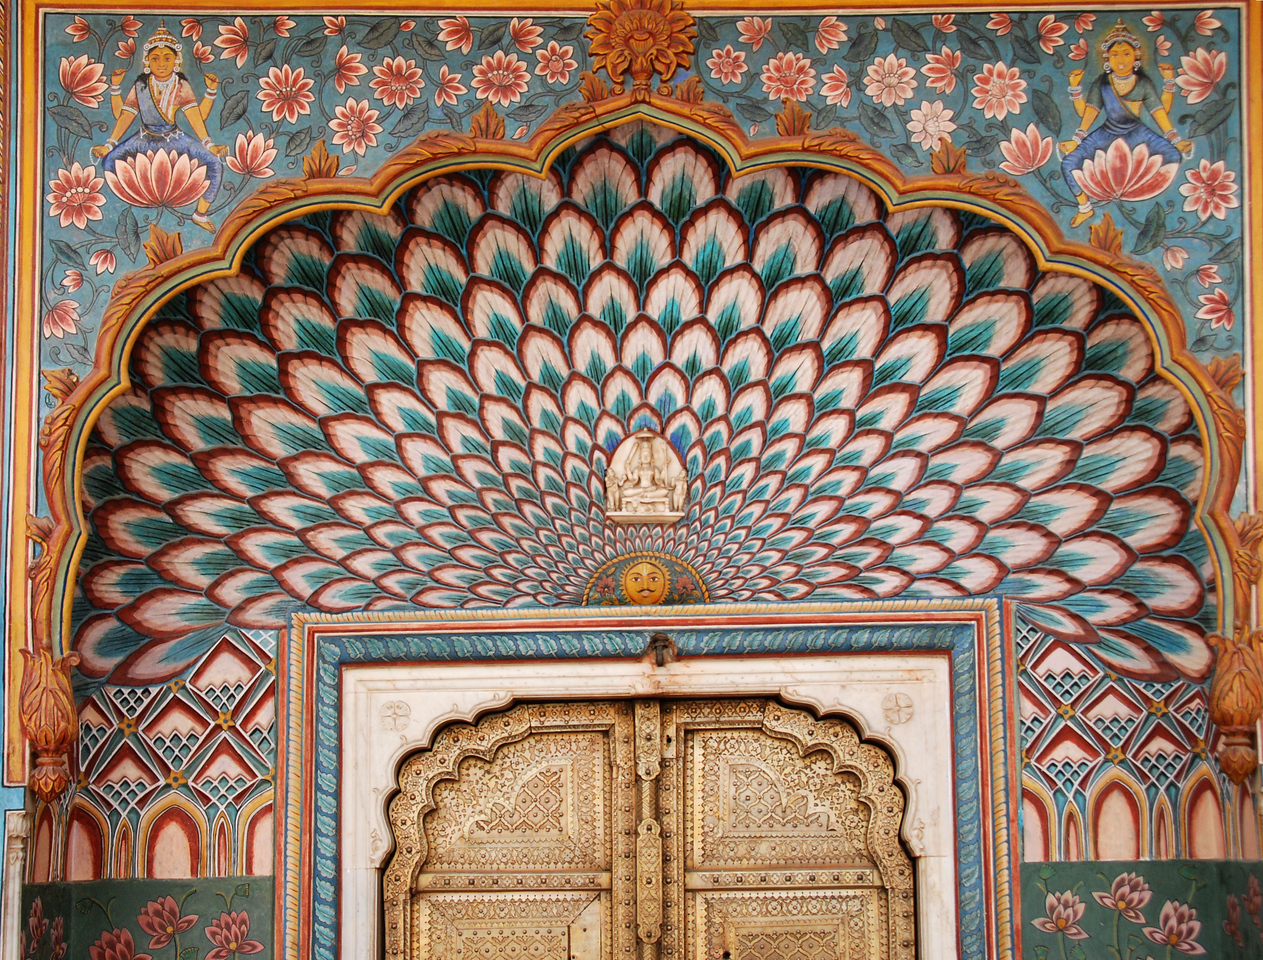 Doorway to the Jaipur City Palace Museum.